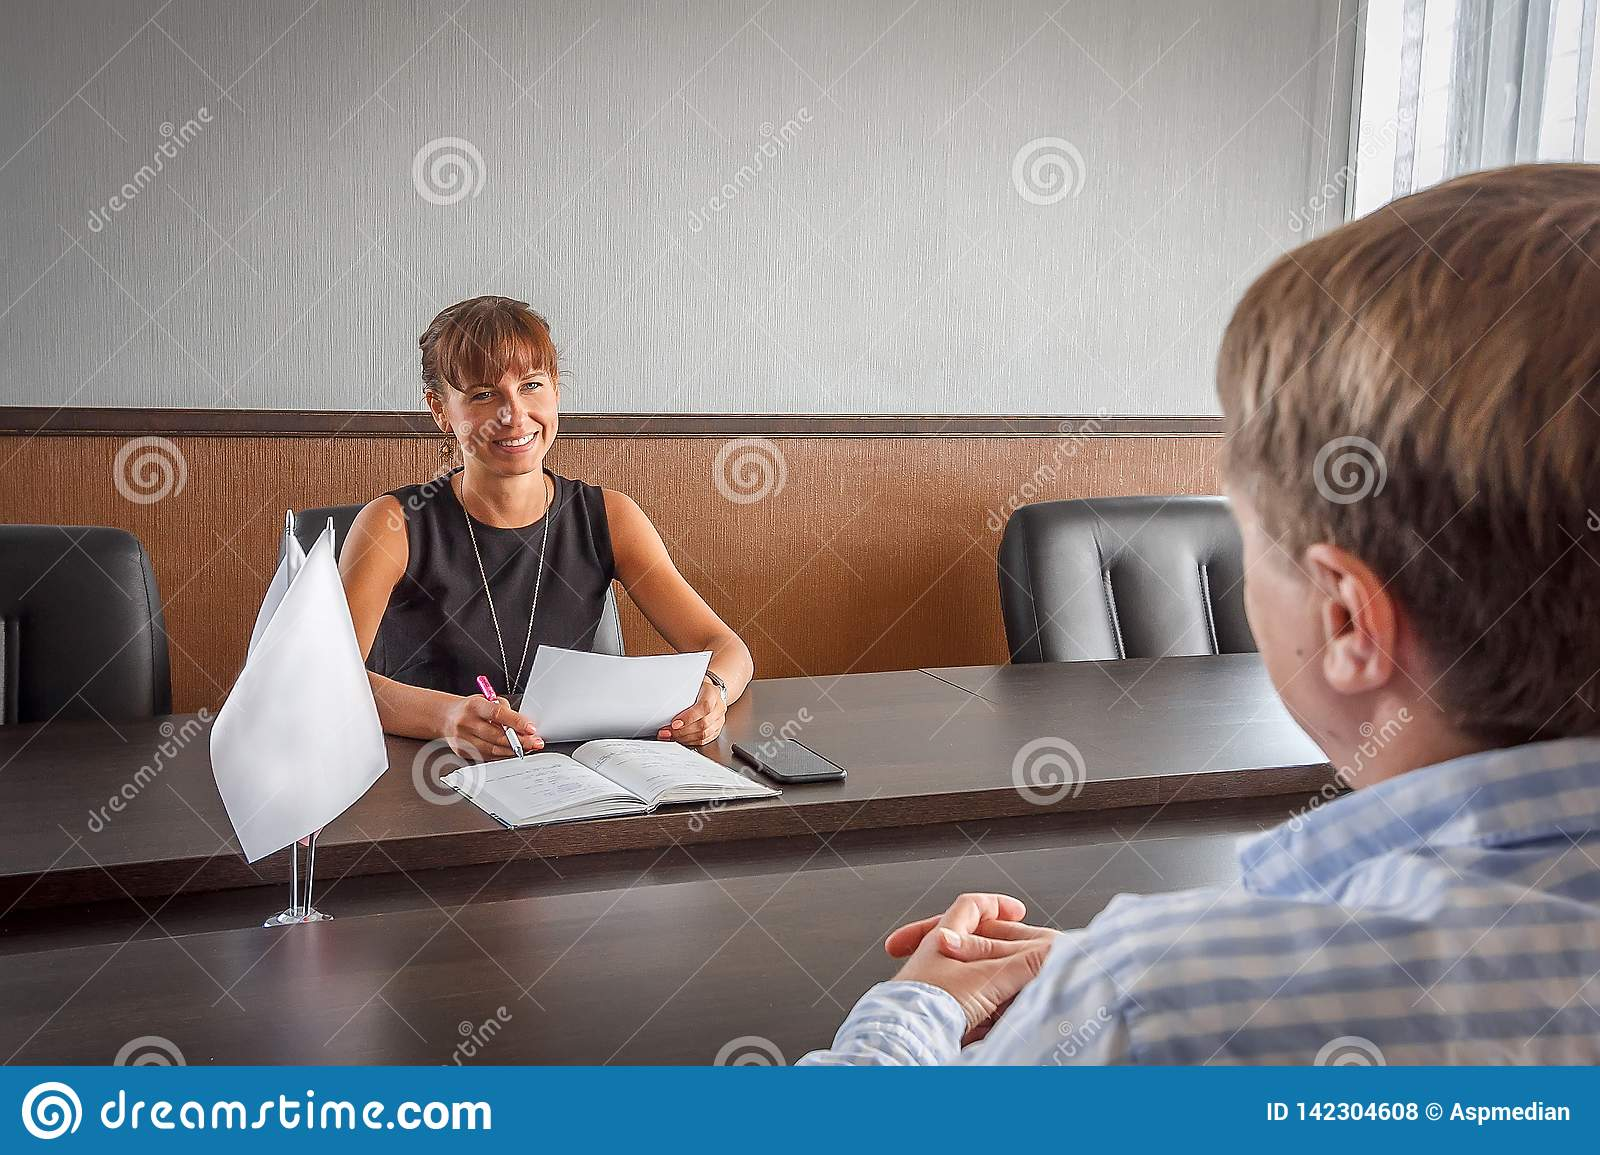 Interviews when applying for a job in the office